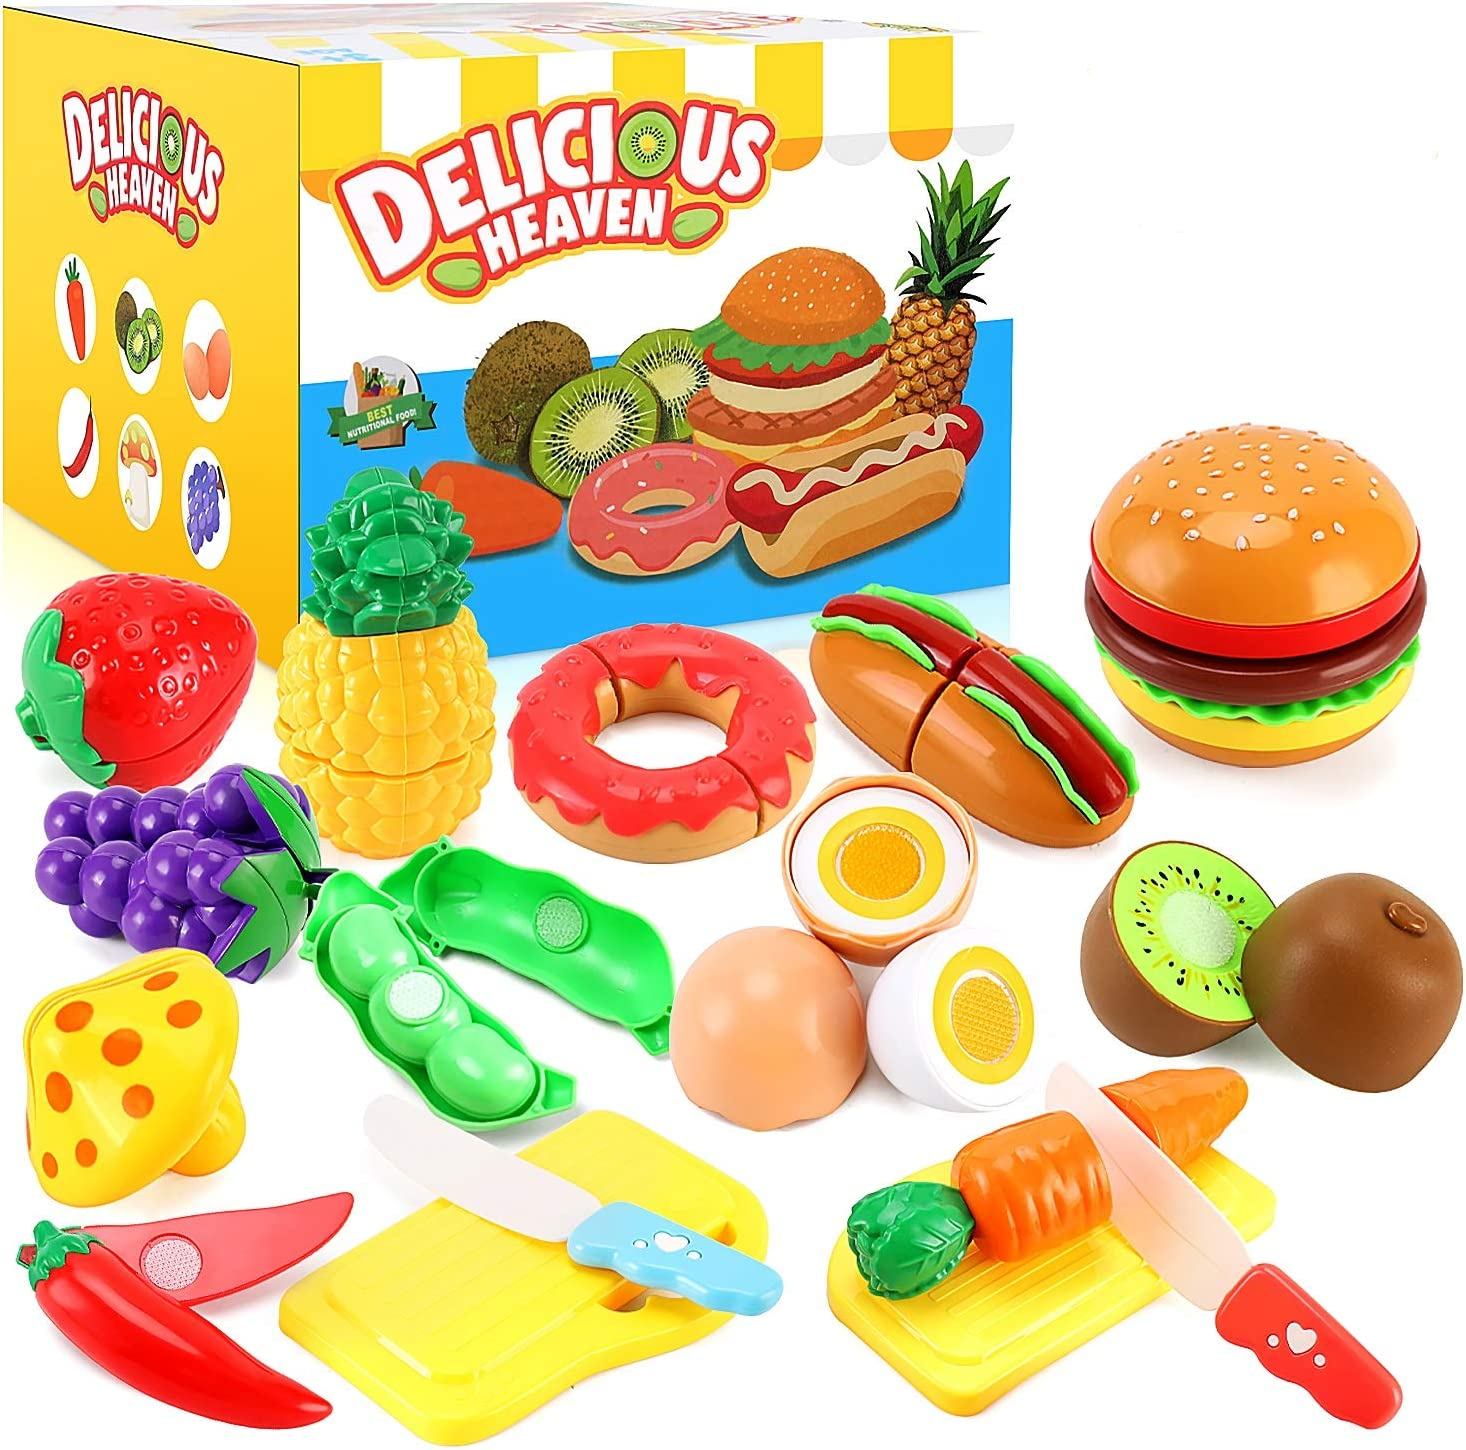 33pcs Cutting Pretend Play Food Toys for Kids Kitchen Set Playset Accessories BPA Free Peel & Cut Toy Food Fruits and Vegetables Toys, Christmas Birthday Gift for Toddlers Girls Boys Kids Storage Box